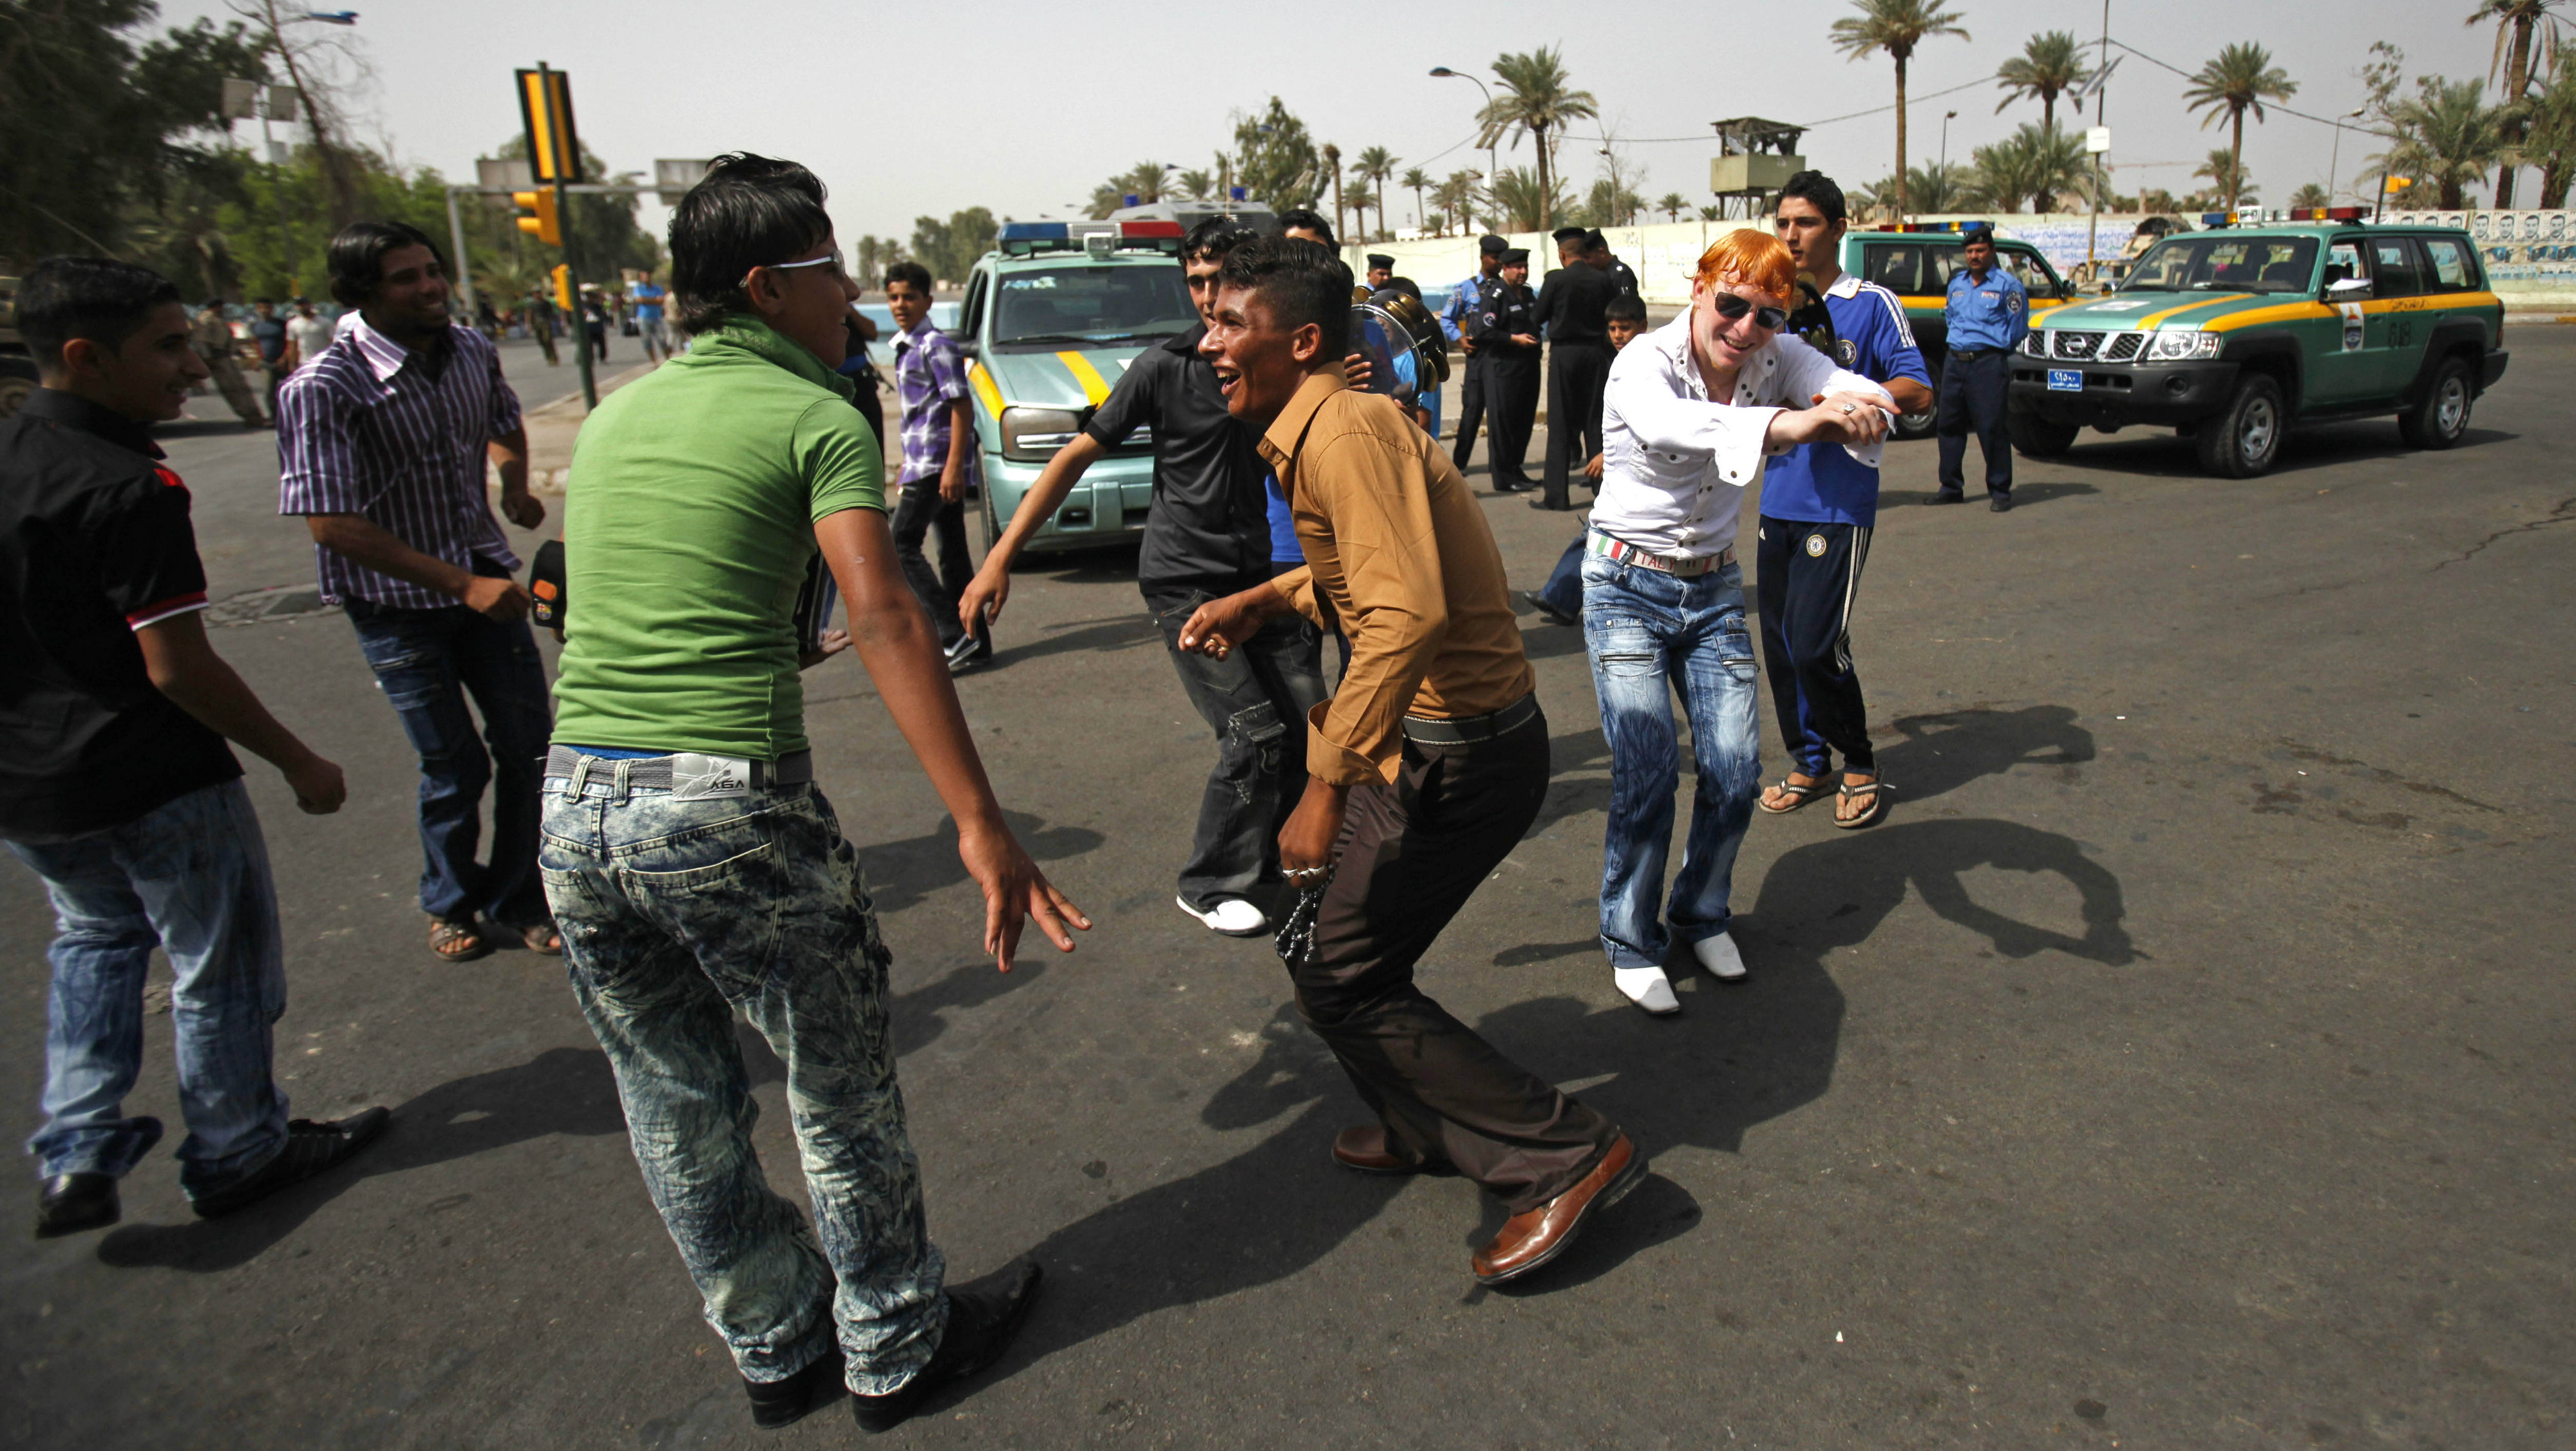 Iraqi teens dance in the street on the first day of Eid al-Fitr in Baghdad, Iraq, Sunday, Sept. 20, 2009.